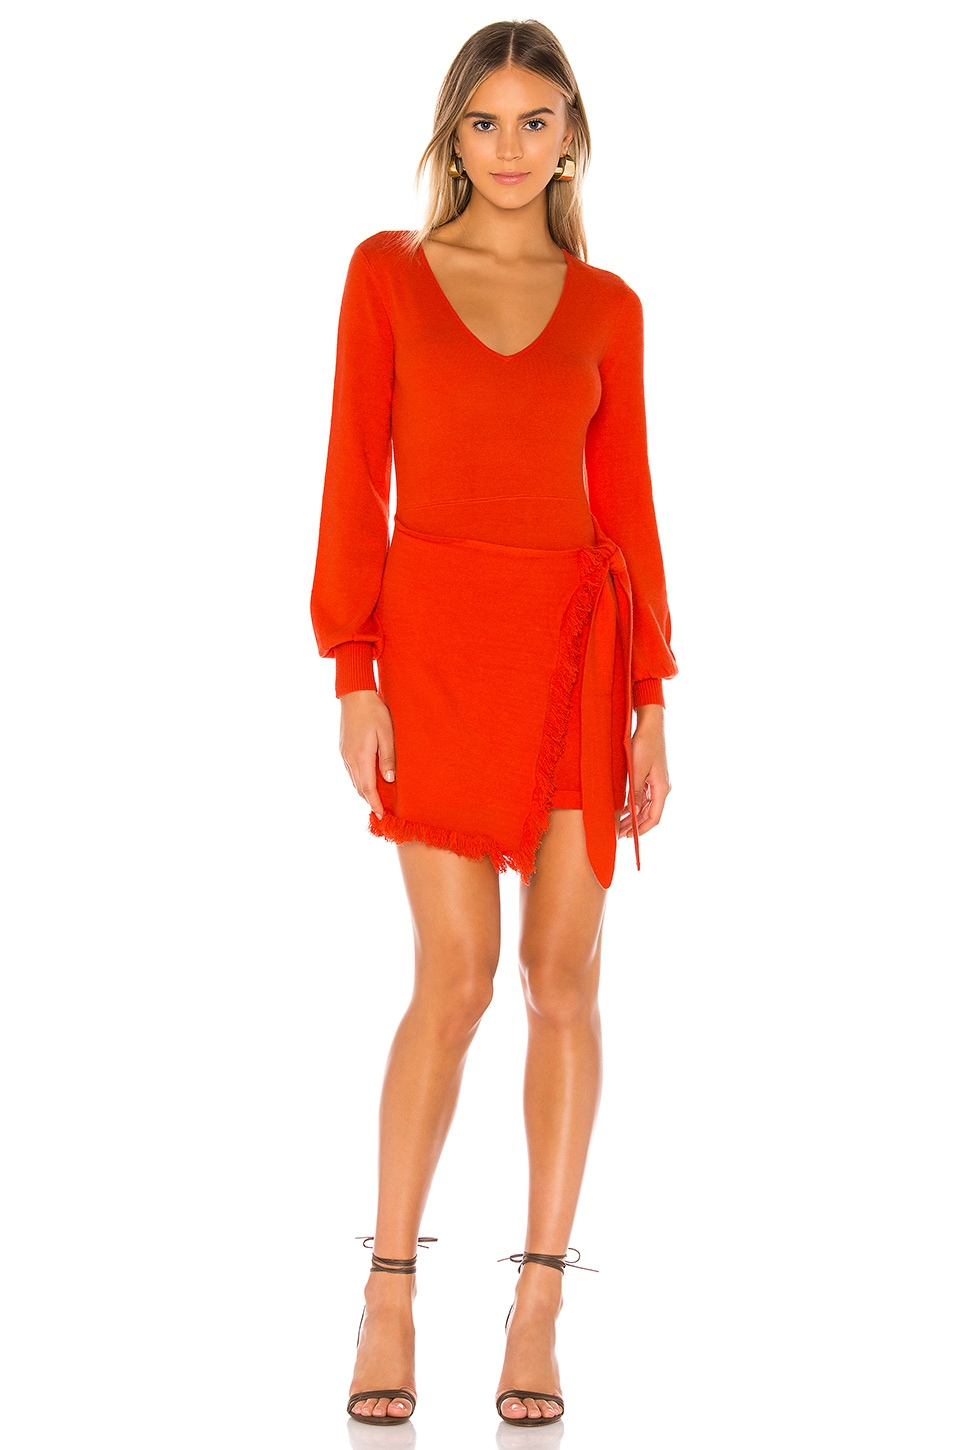 House of Harlow 1960 x REVOLVE Petra Sweater Dress in Crimson